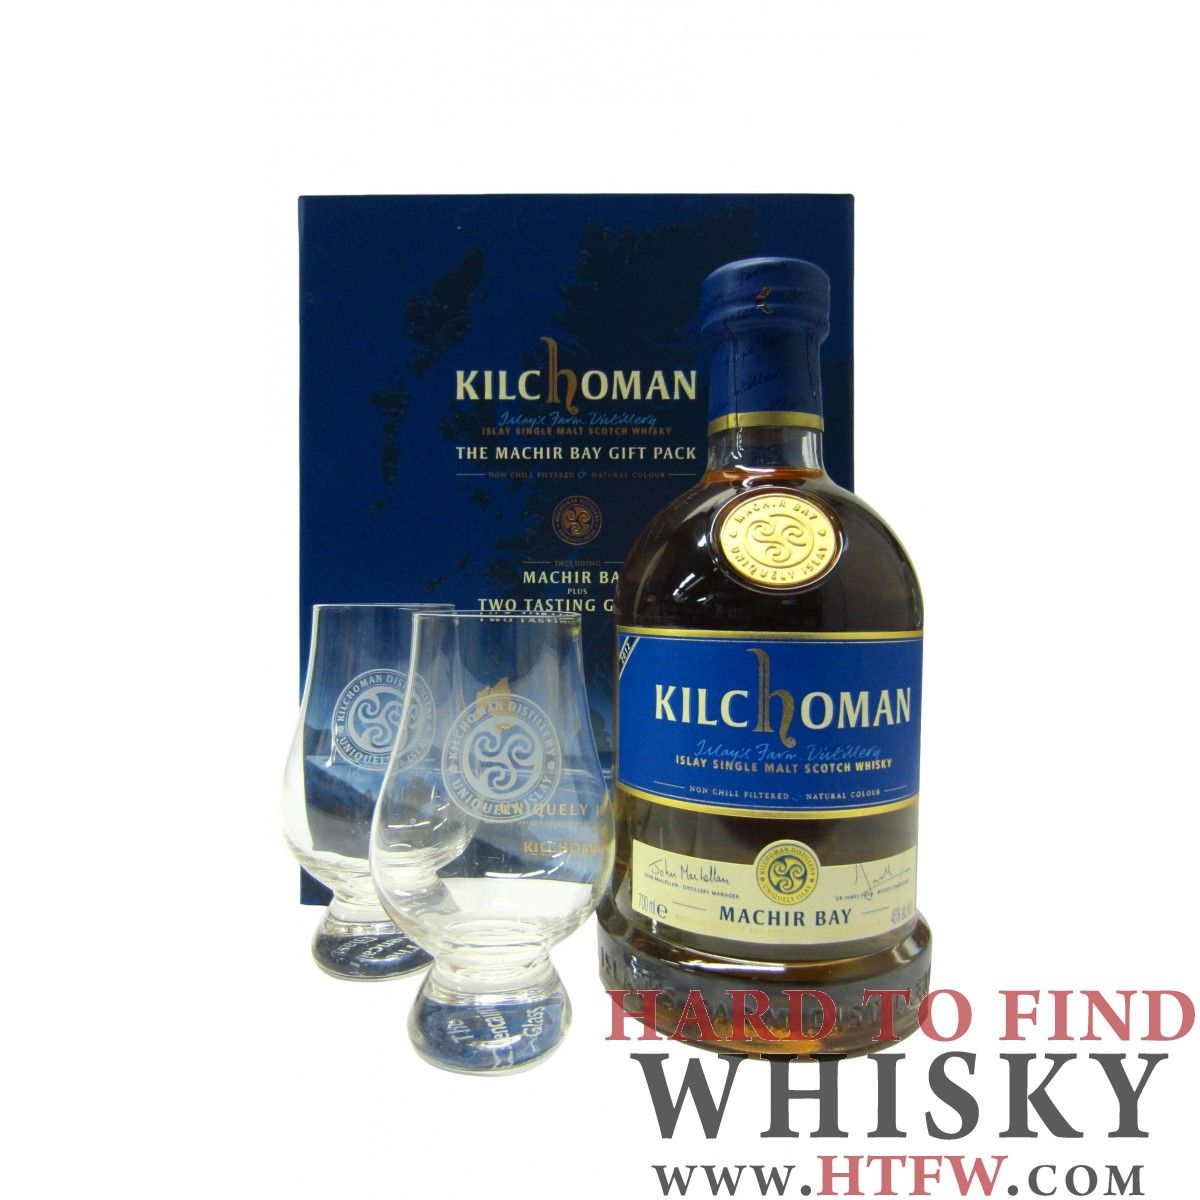 Buy Kilchoman The Machir Bay Gift Pack 3 year old Whisky Online | HTFW